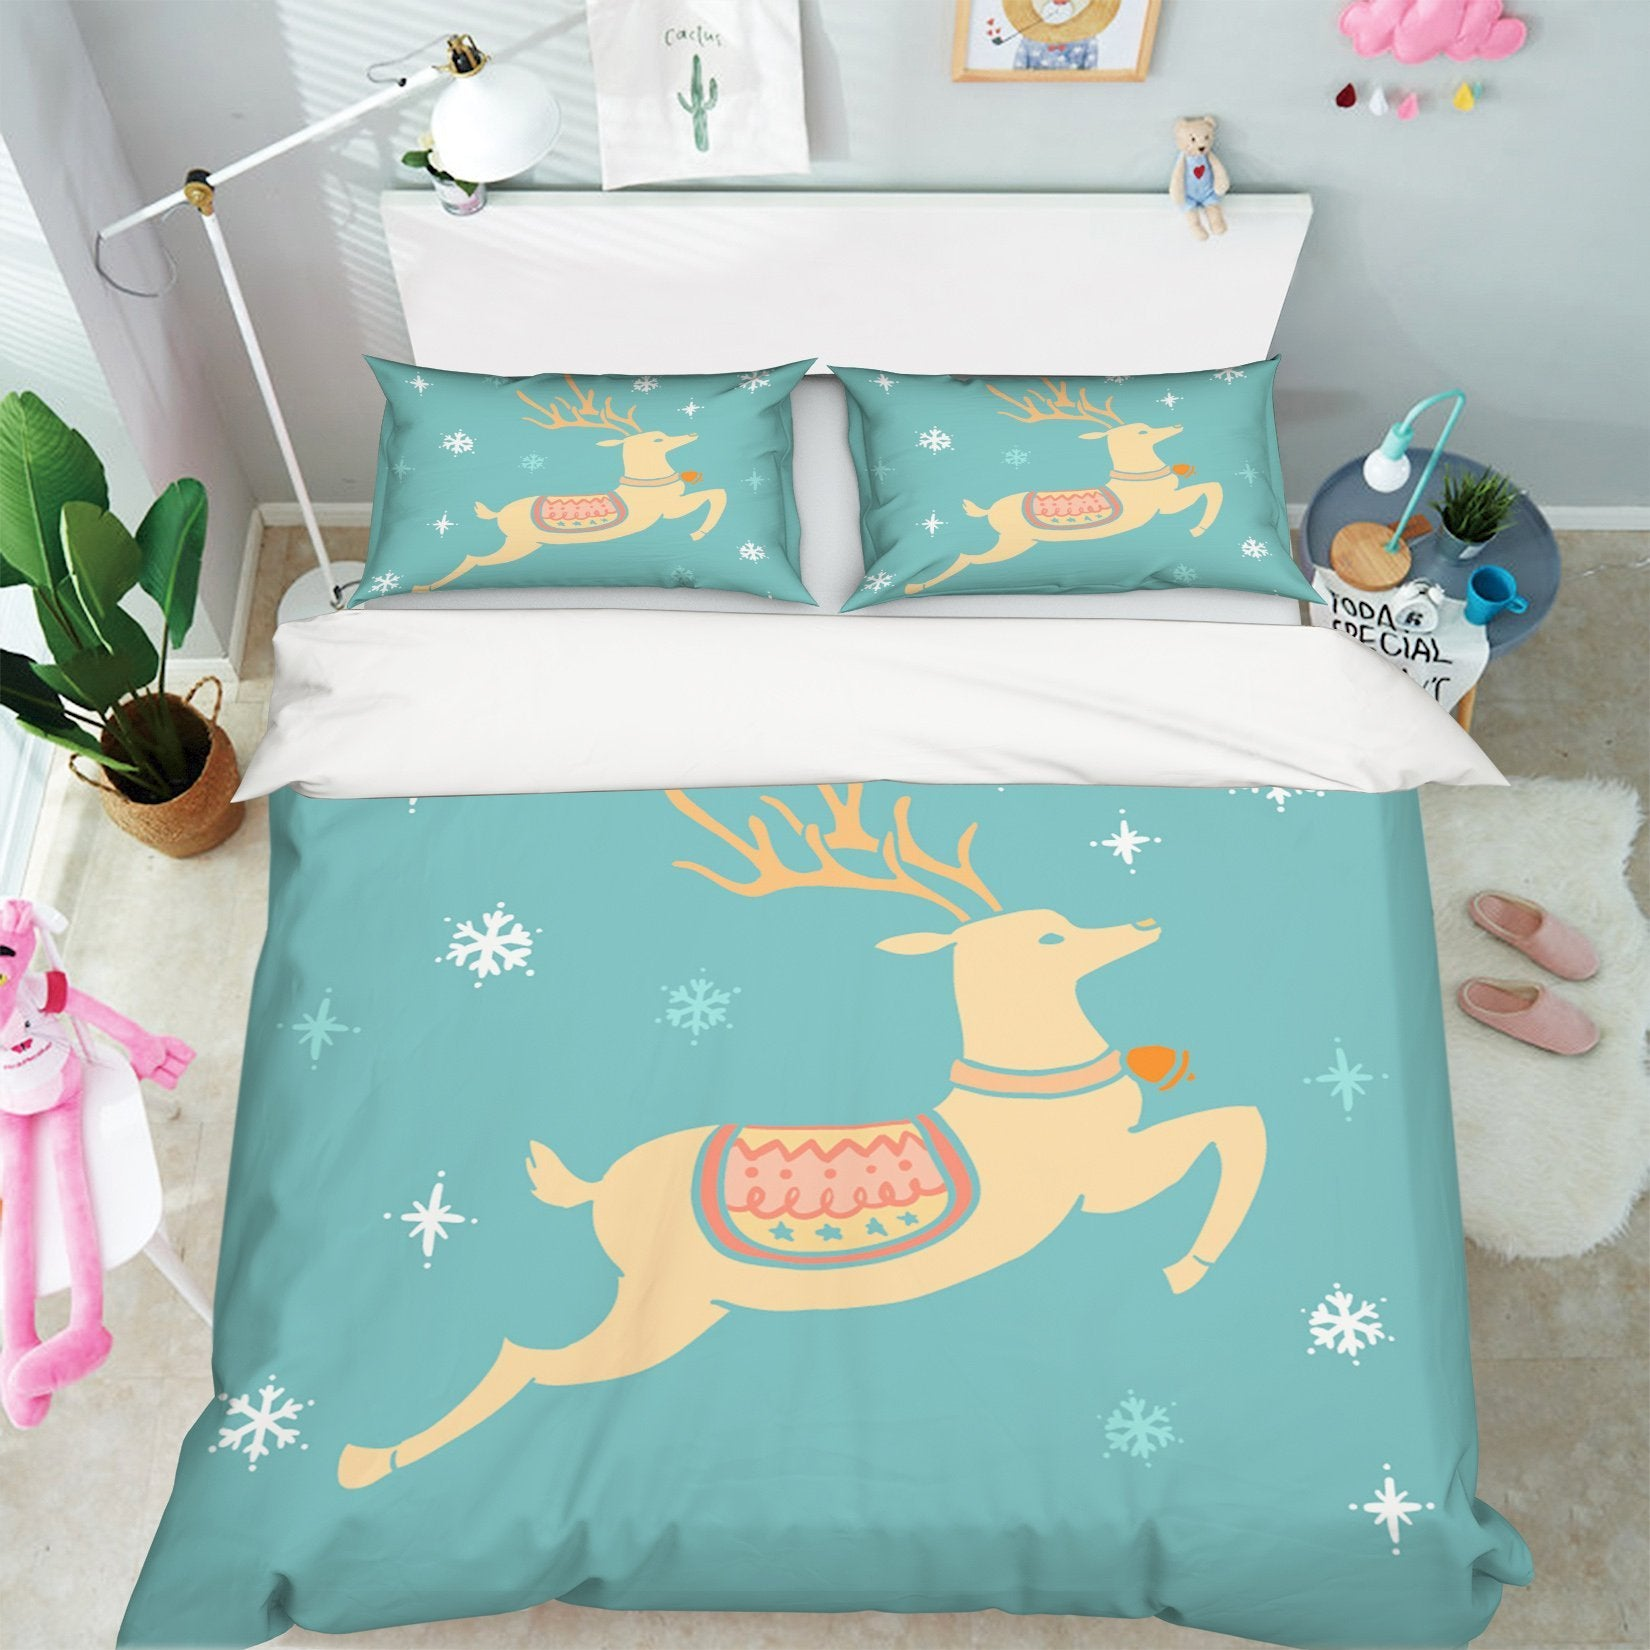 3D Christmas Jumping Deer 19 Bed Pillowcases Quilt Quiet Covers AJ Creativity Home